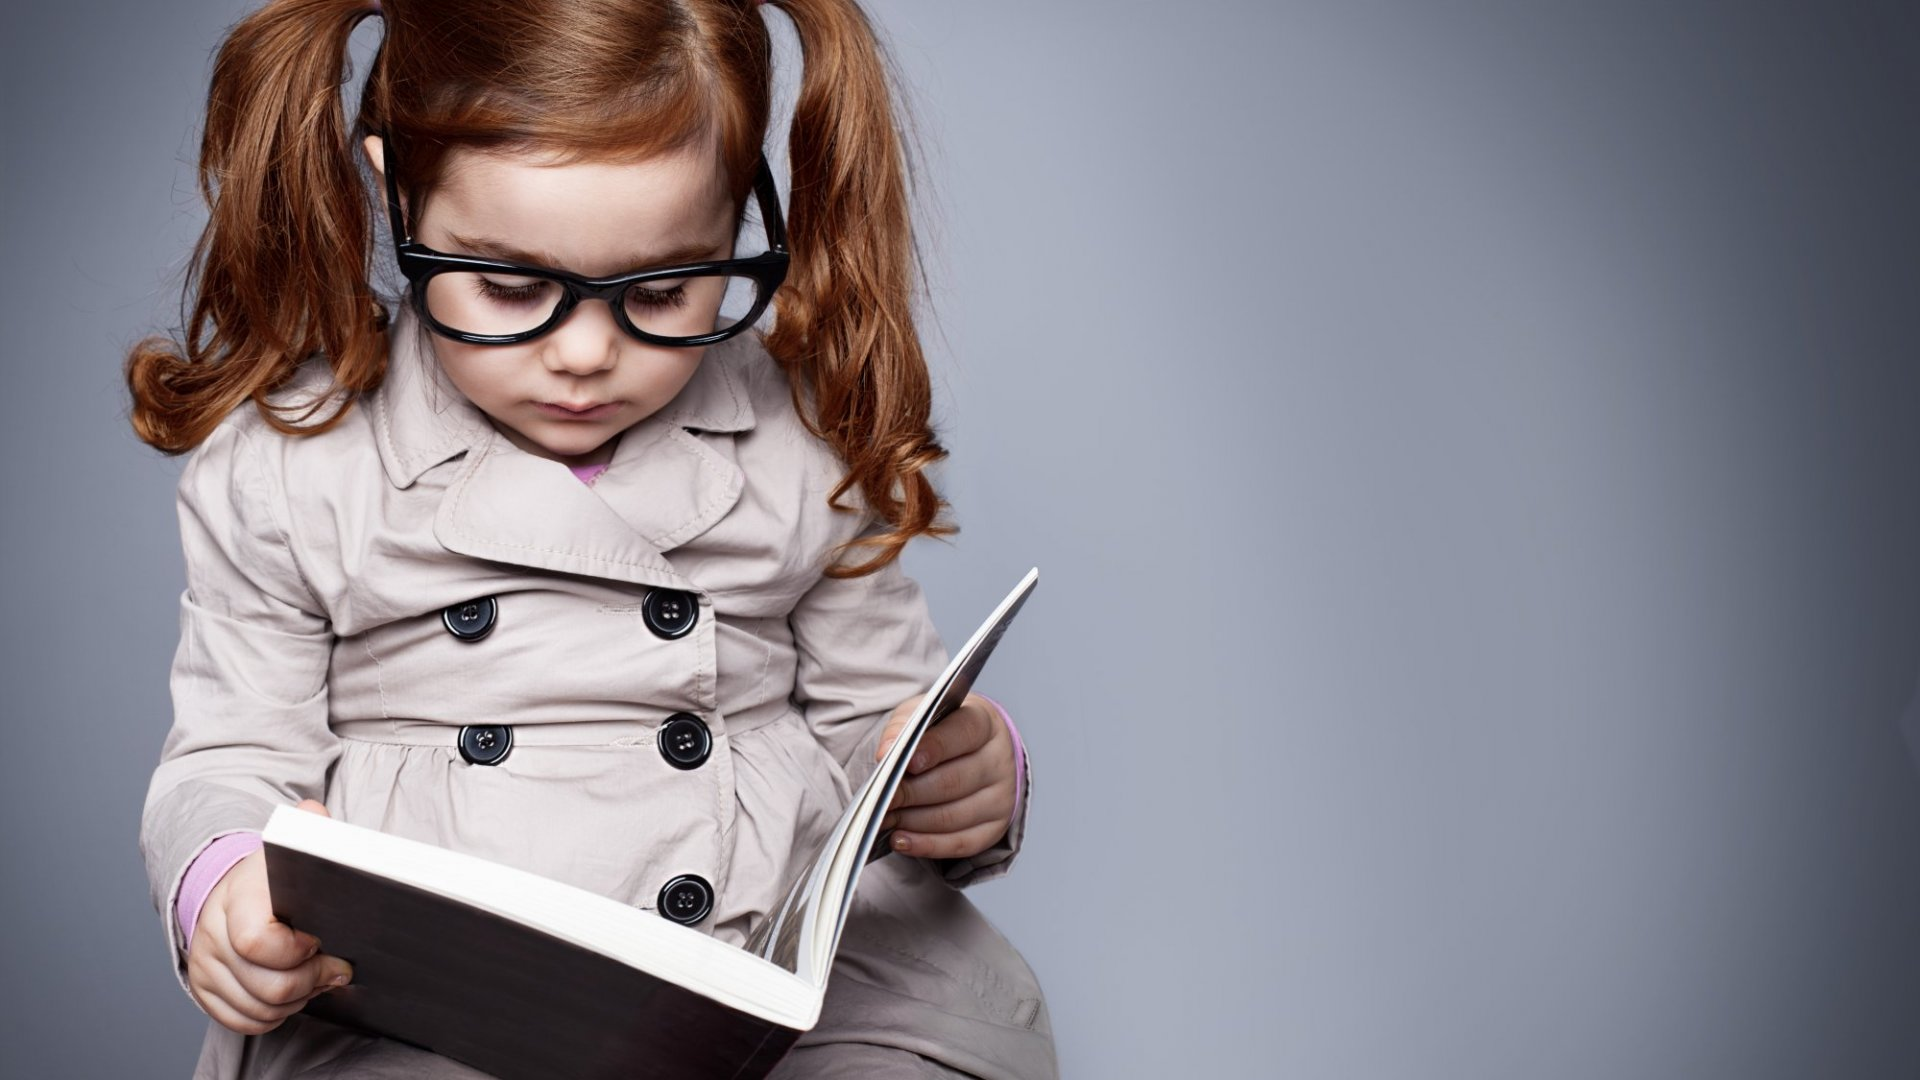 Want Your Kids to Grow Up Successful? Here's What You Need at Home